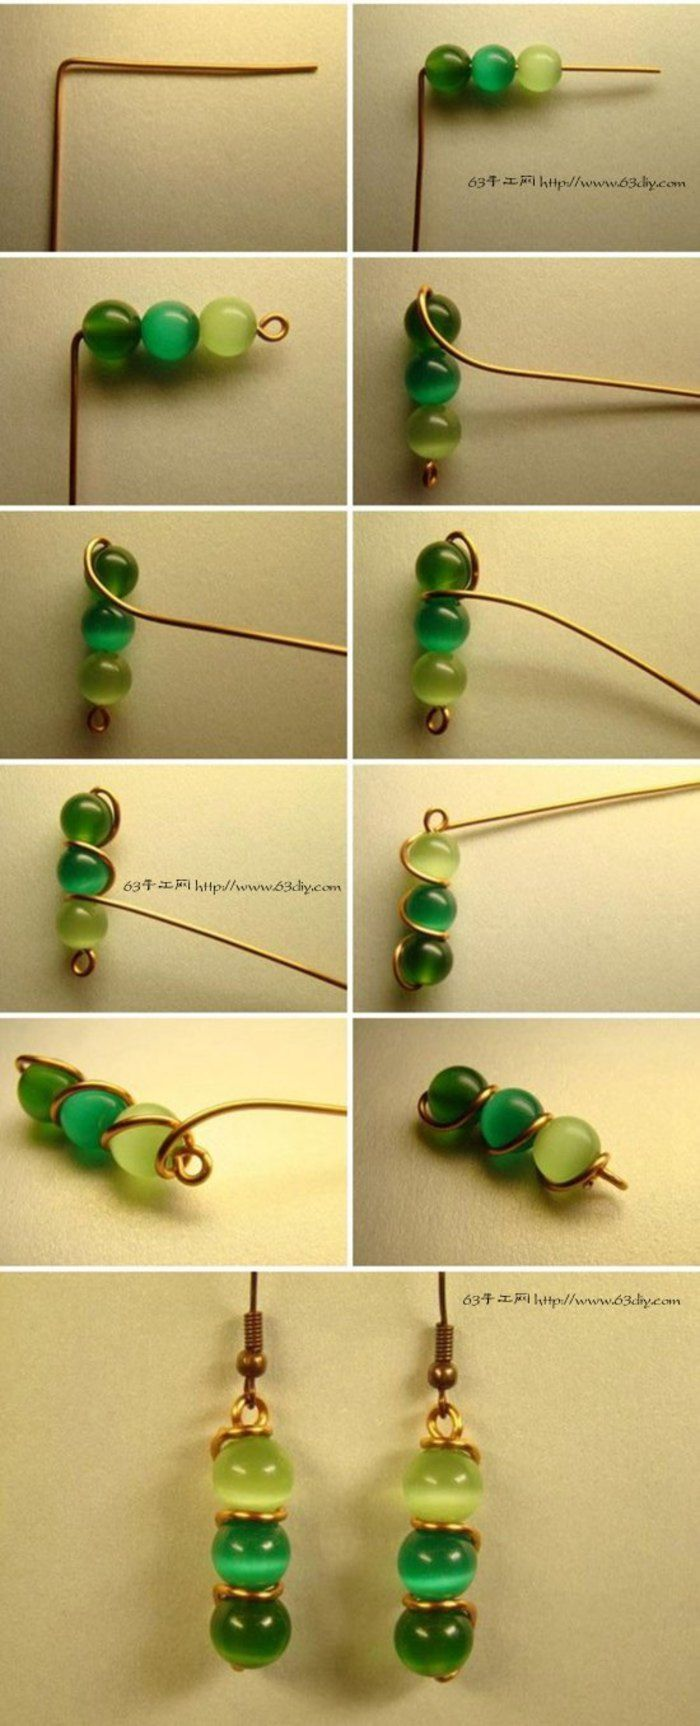 Green Bead Earrings...♥ Deniz ♥